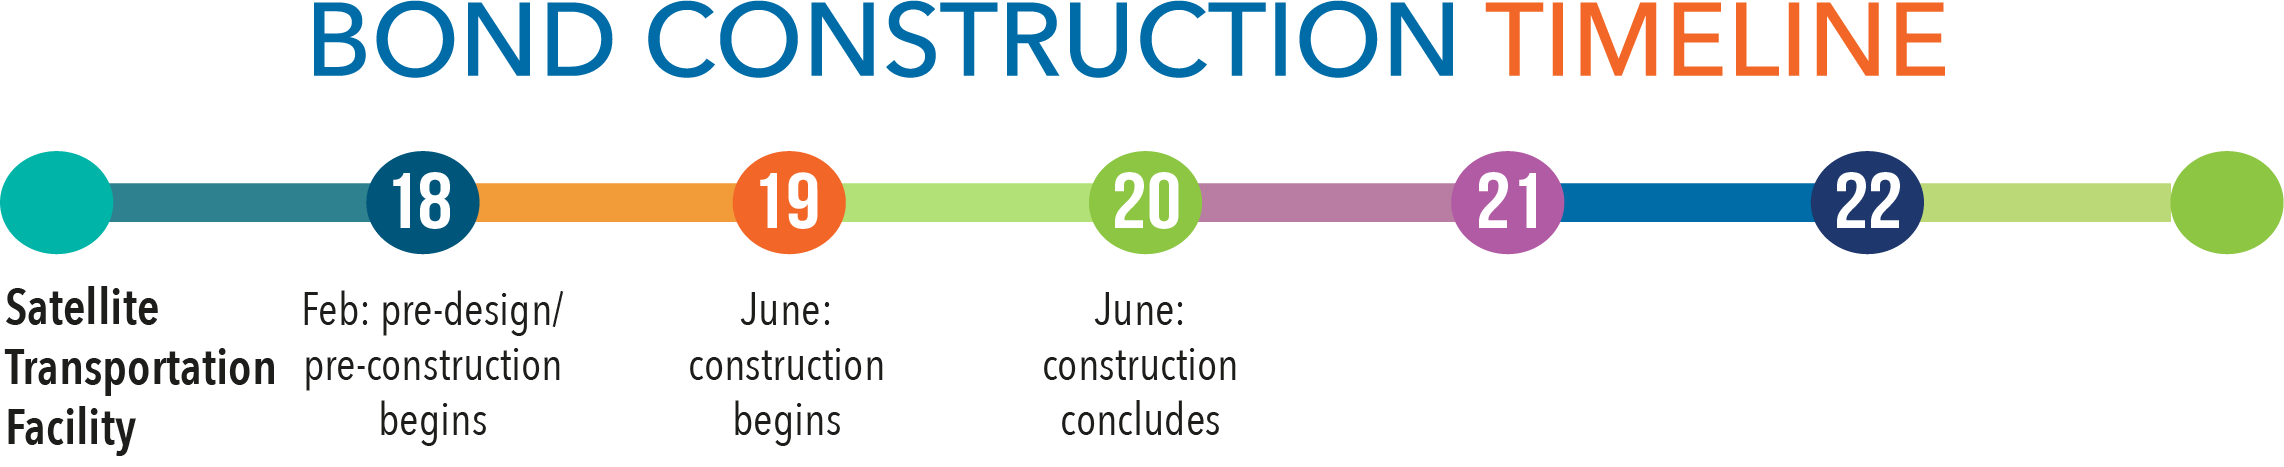 Bond construction timeline - satellite transportation facility